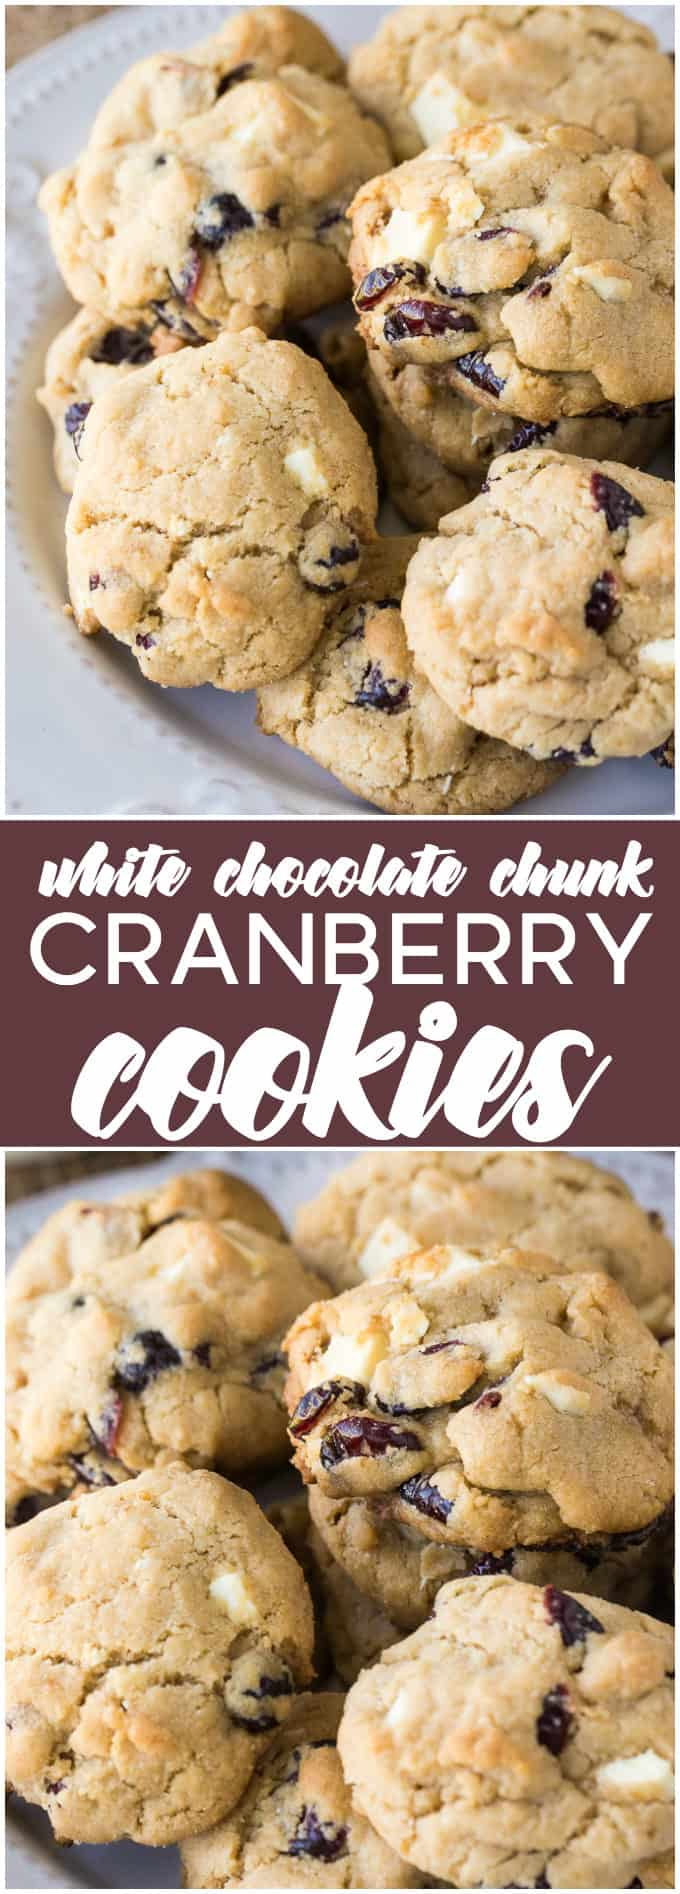 White Chocolate Chunk Cranberry Cookies - Festive cookies perfect for a Cookie Exchange!